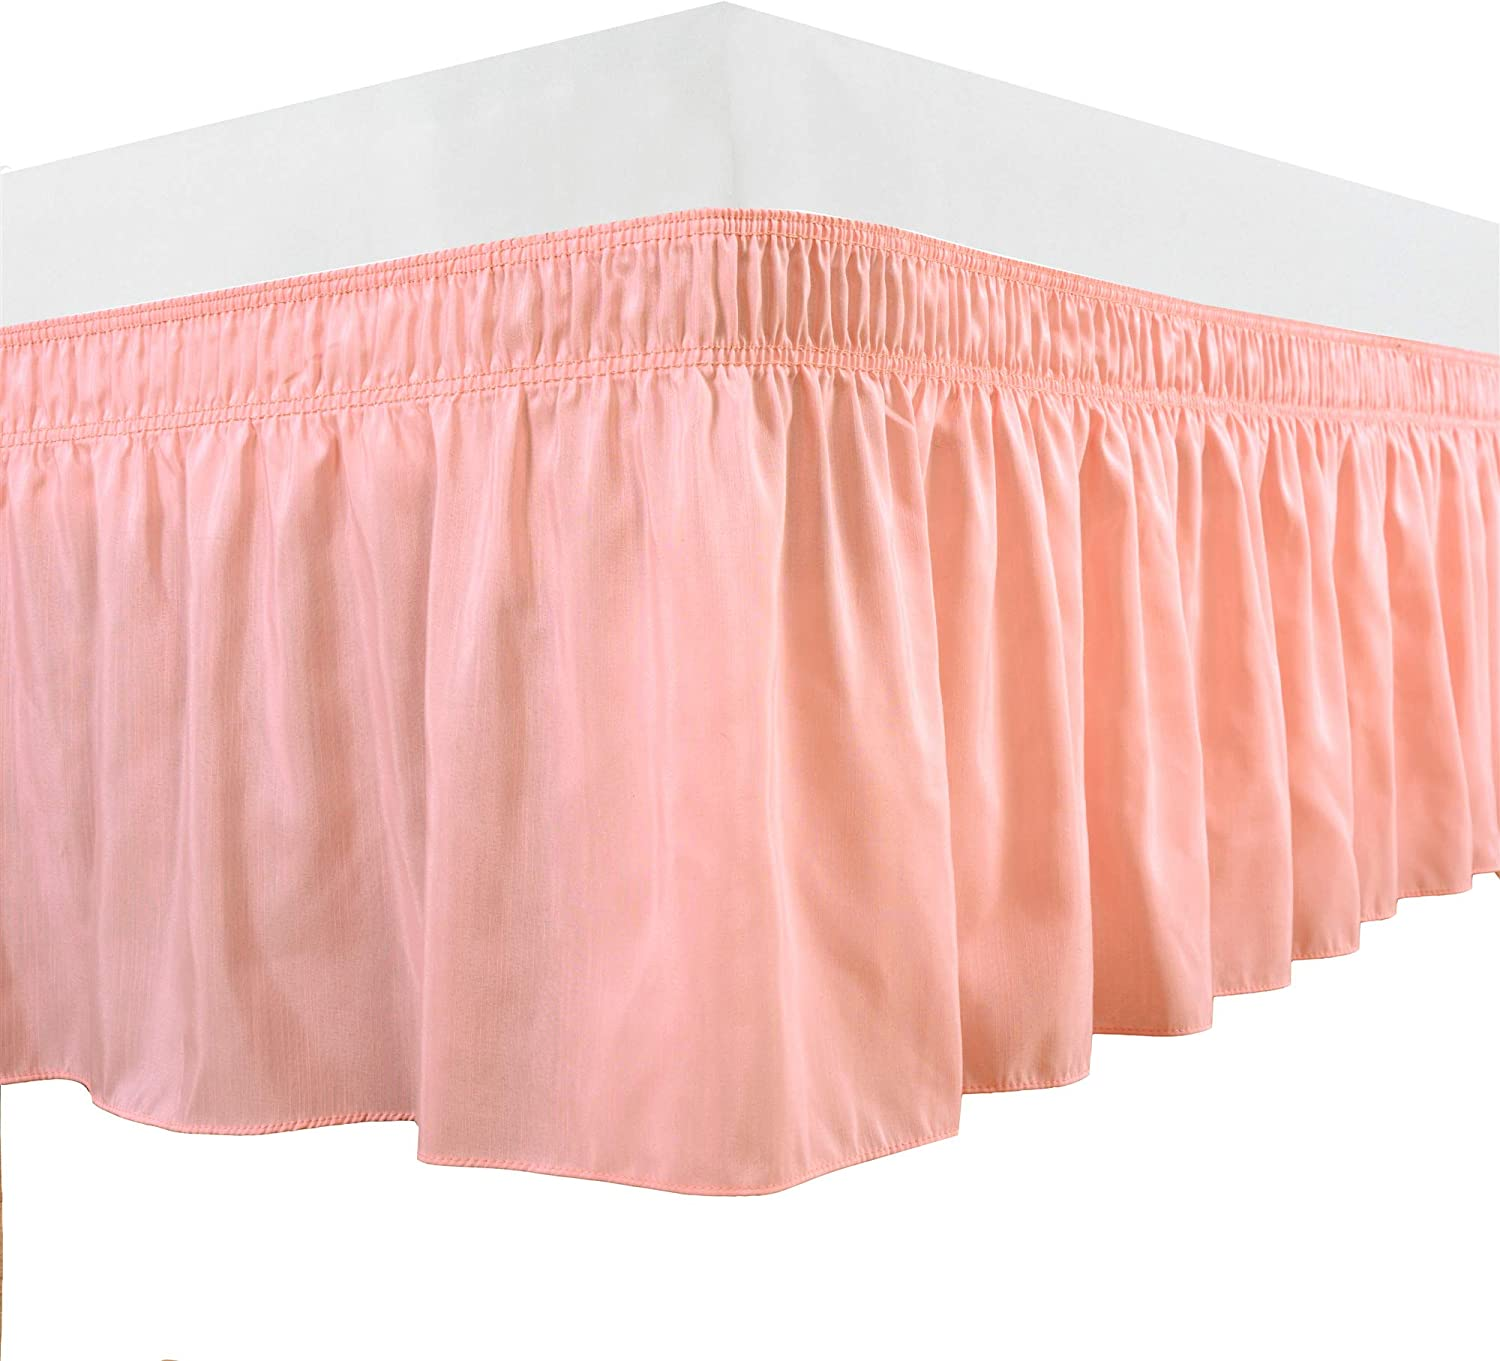 Biscaynebay Wrap Around Bed Skirts Elastic Dust Ruffles, Easy Fit Wrinkle and Fade Resistant Silky Luxrious Fabric Solid Color, Pink for Queen Size Beds 15 Inches Drop